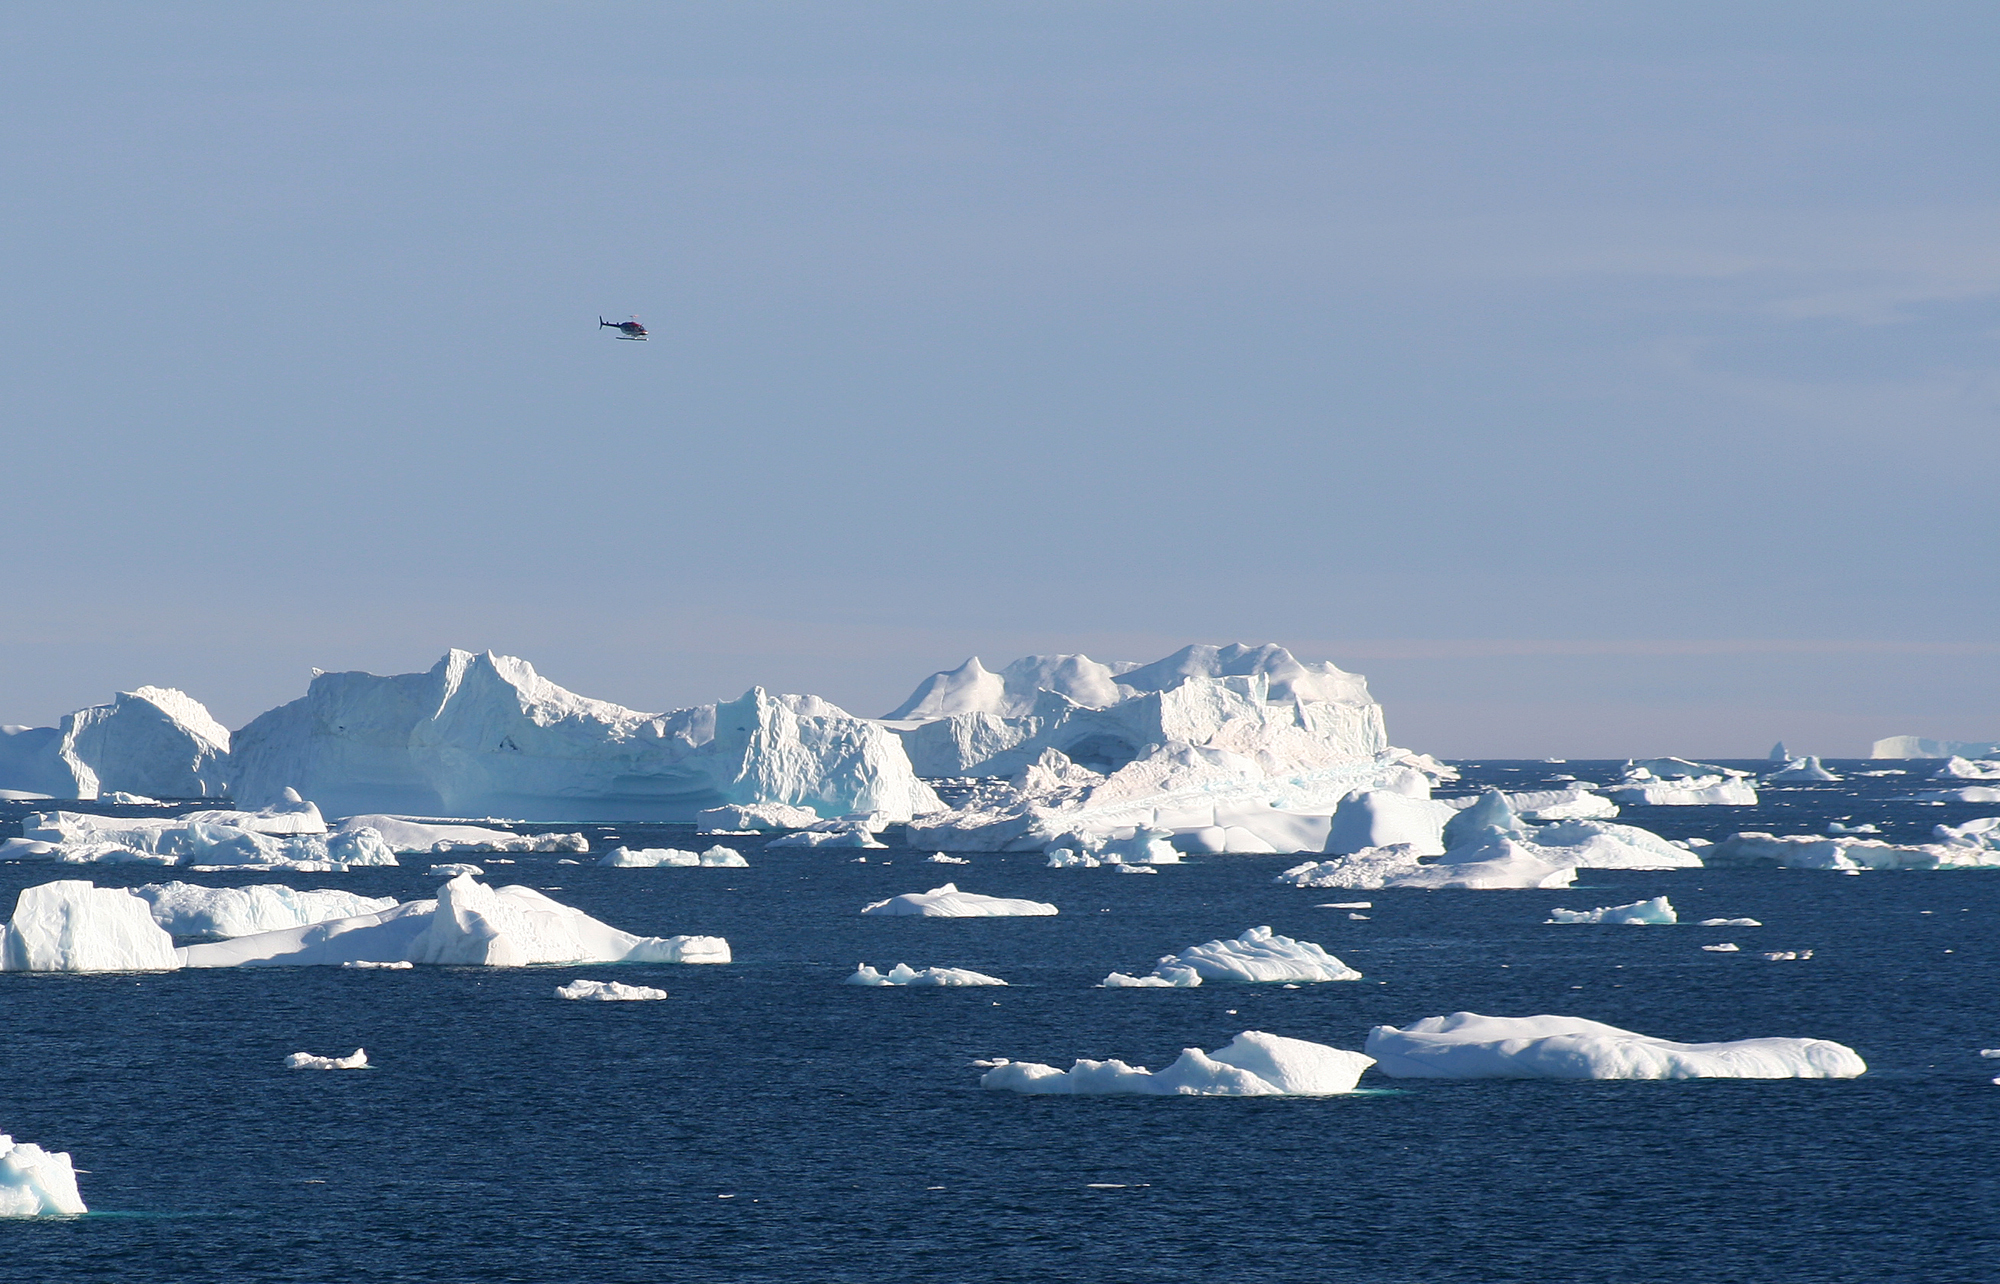 Helicopter flying around the icebergs at Cape York